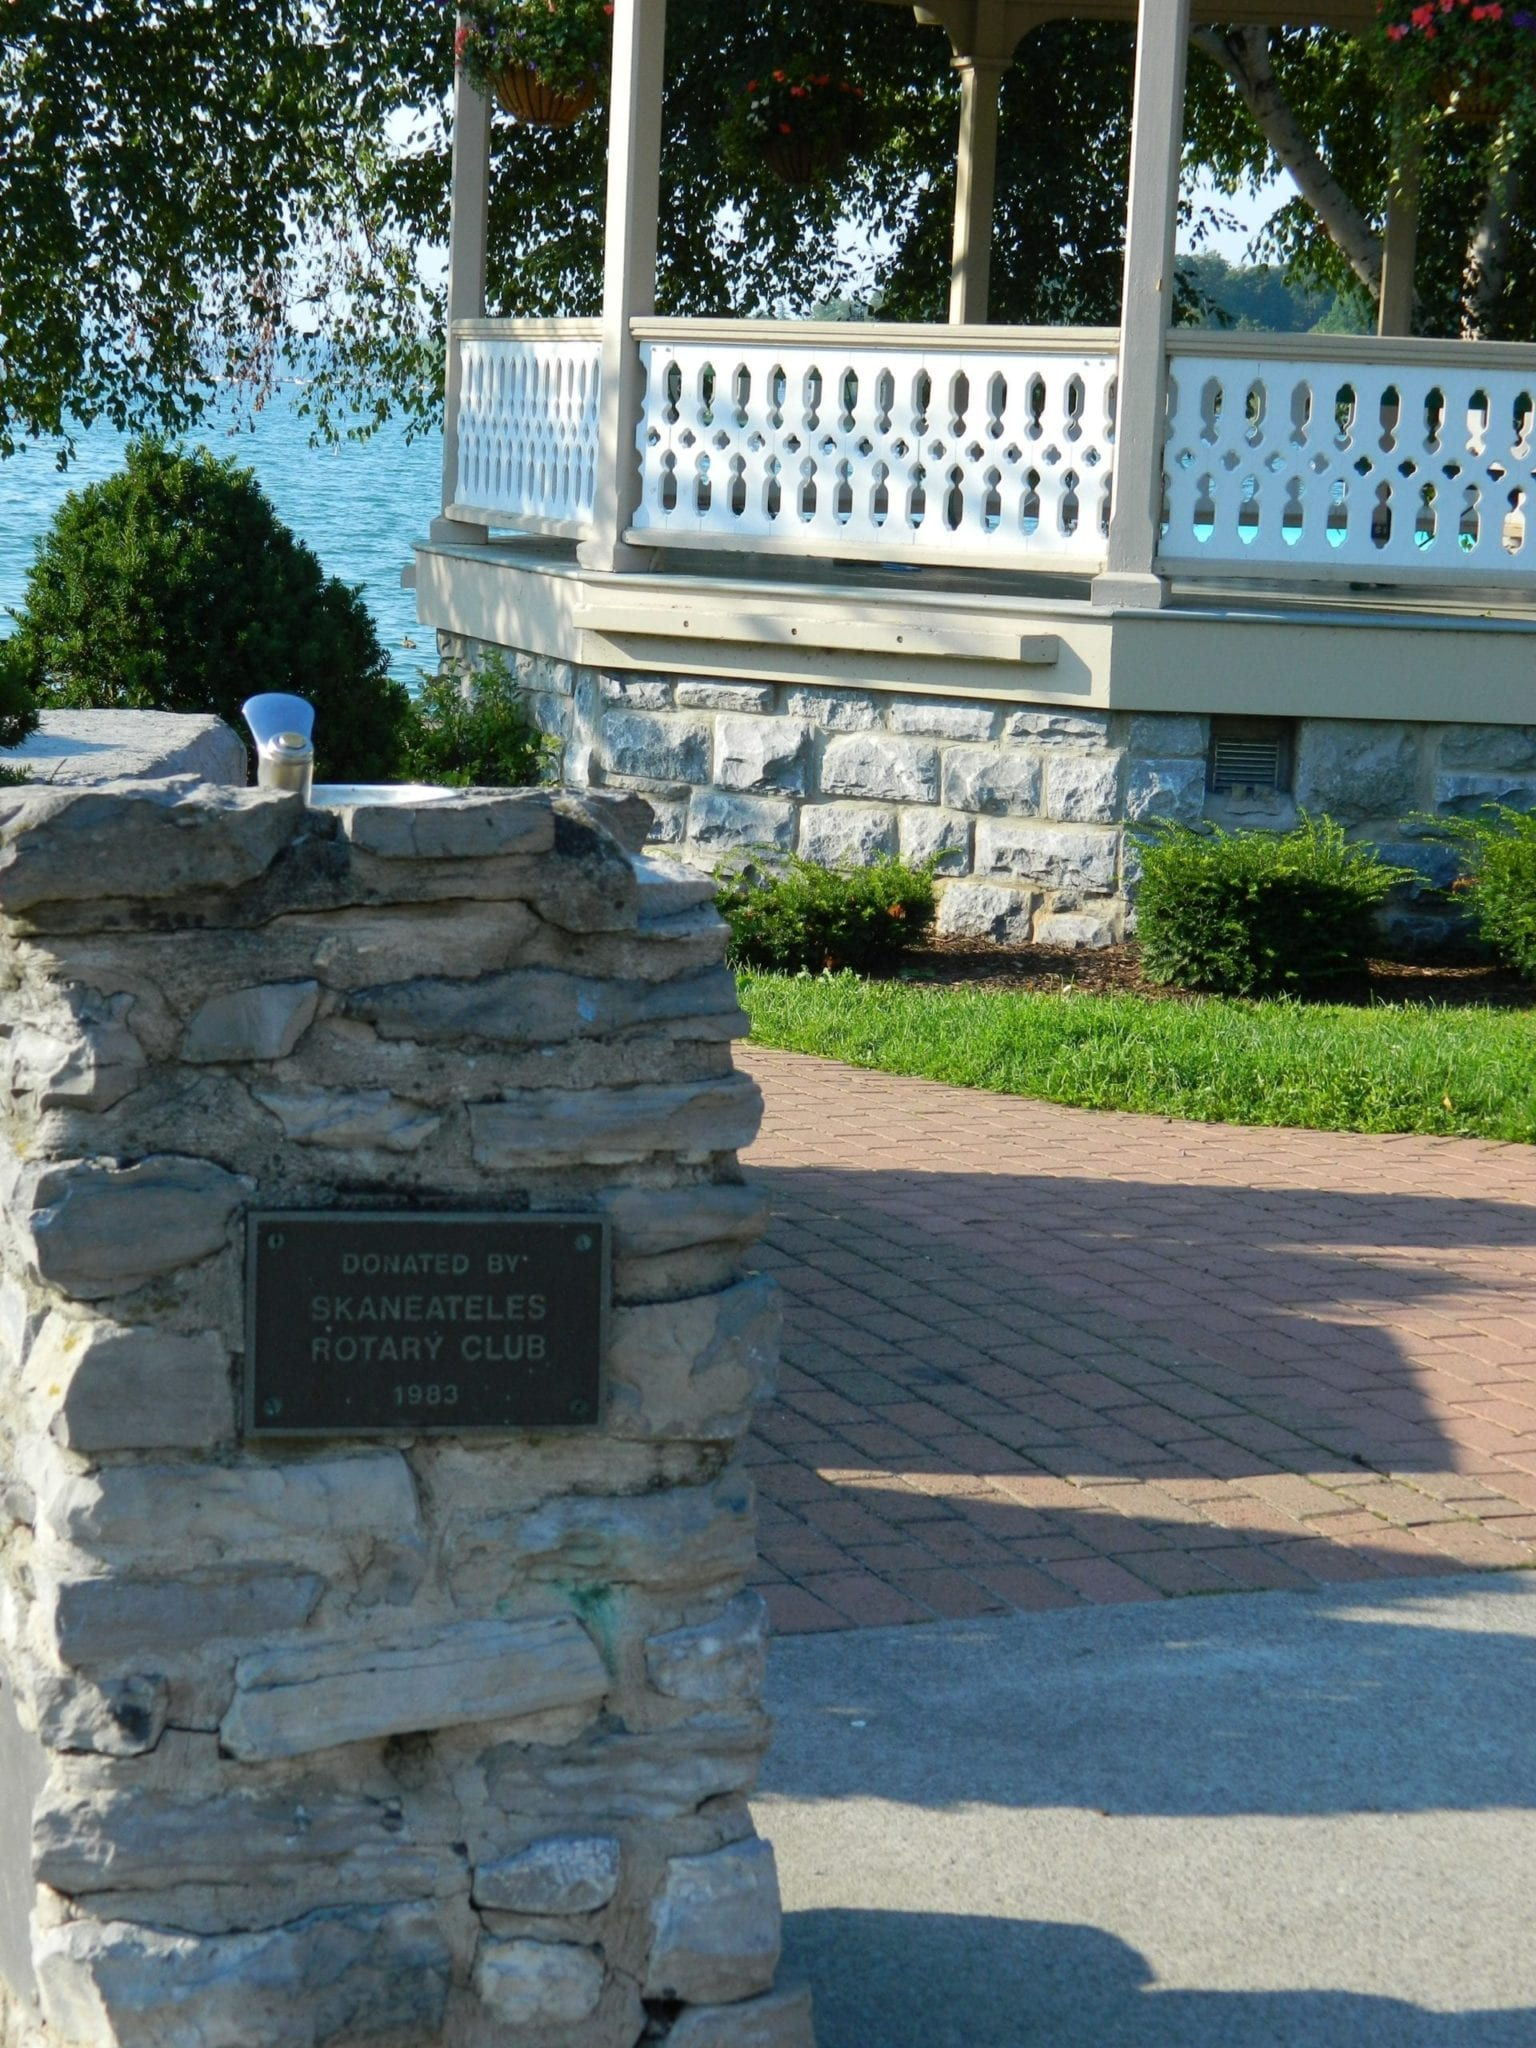 Rotary clubs raising funds for new Clift Park drinking fountain